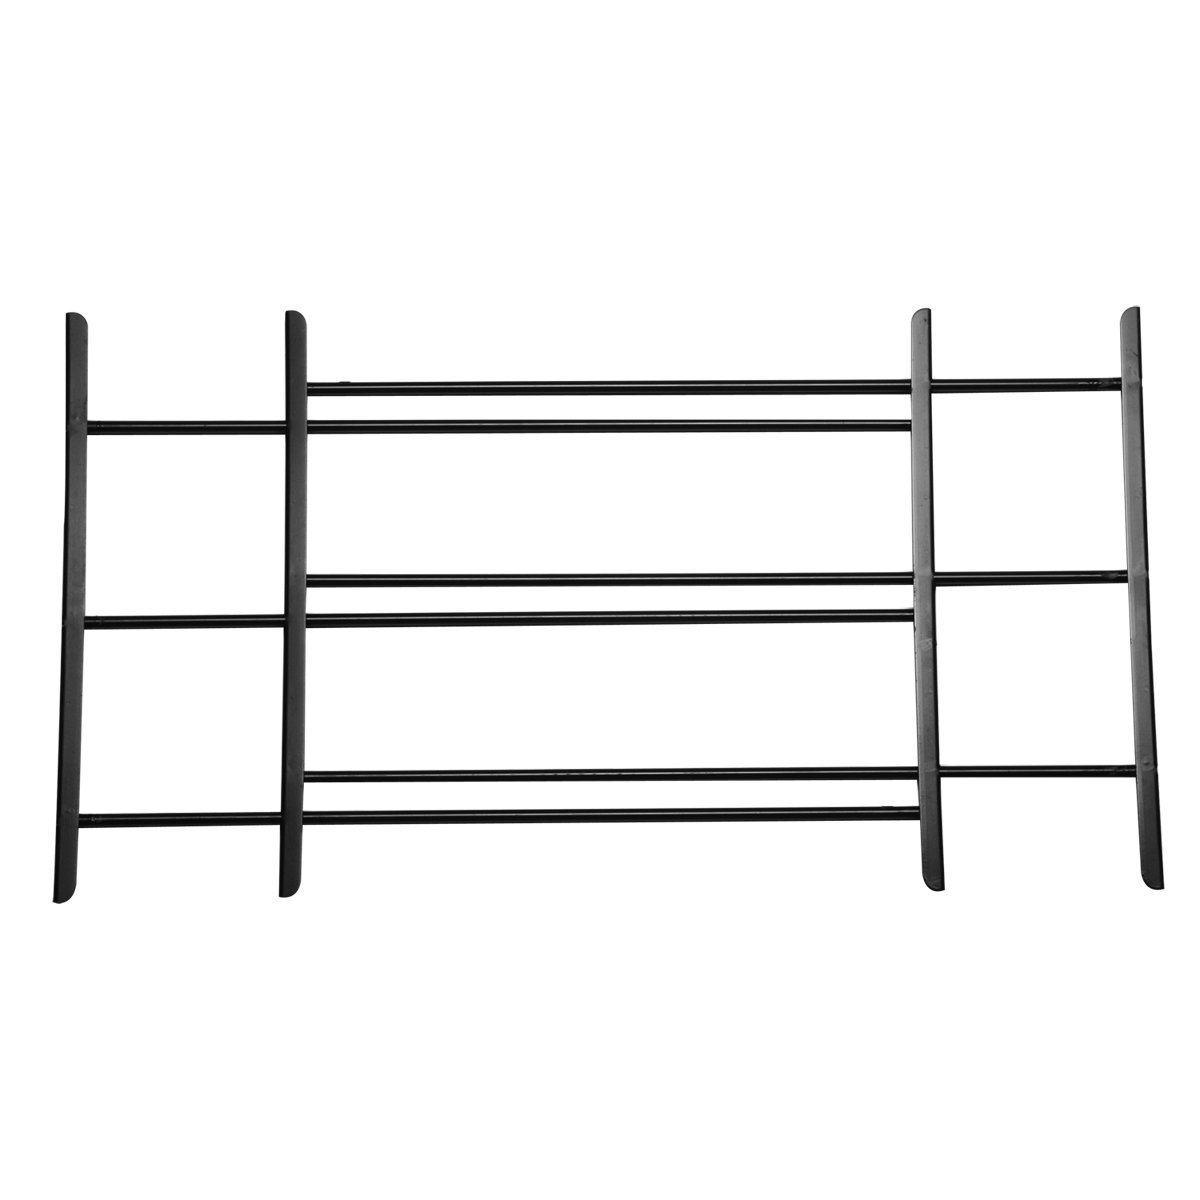 Knape & Vogt John Sterling Non-Opening Style 3-Bar Child Safety and Window Guard, Black, 1123-DB